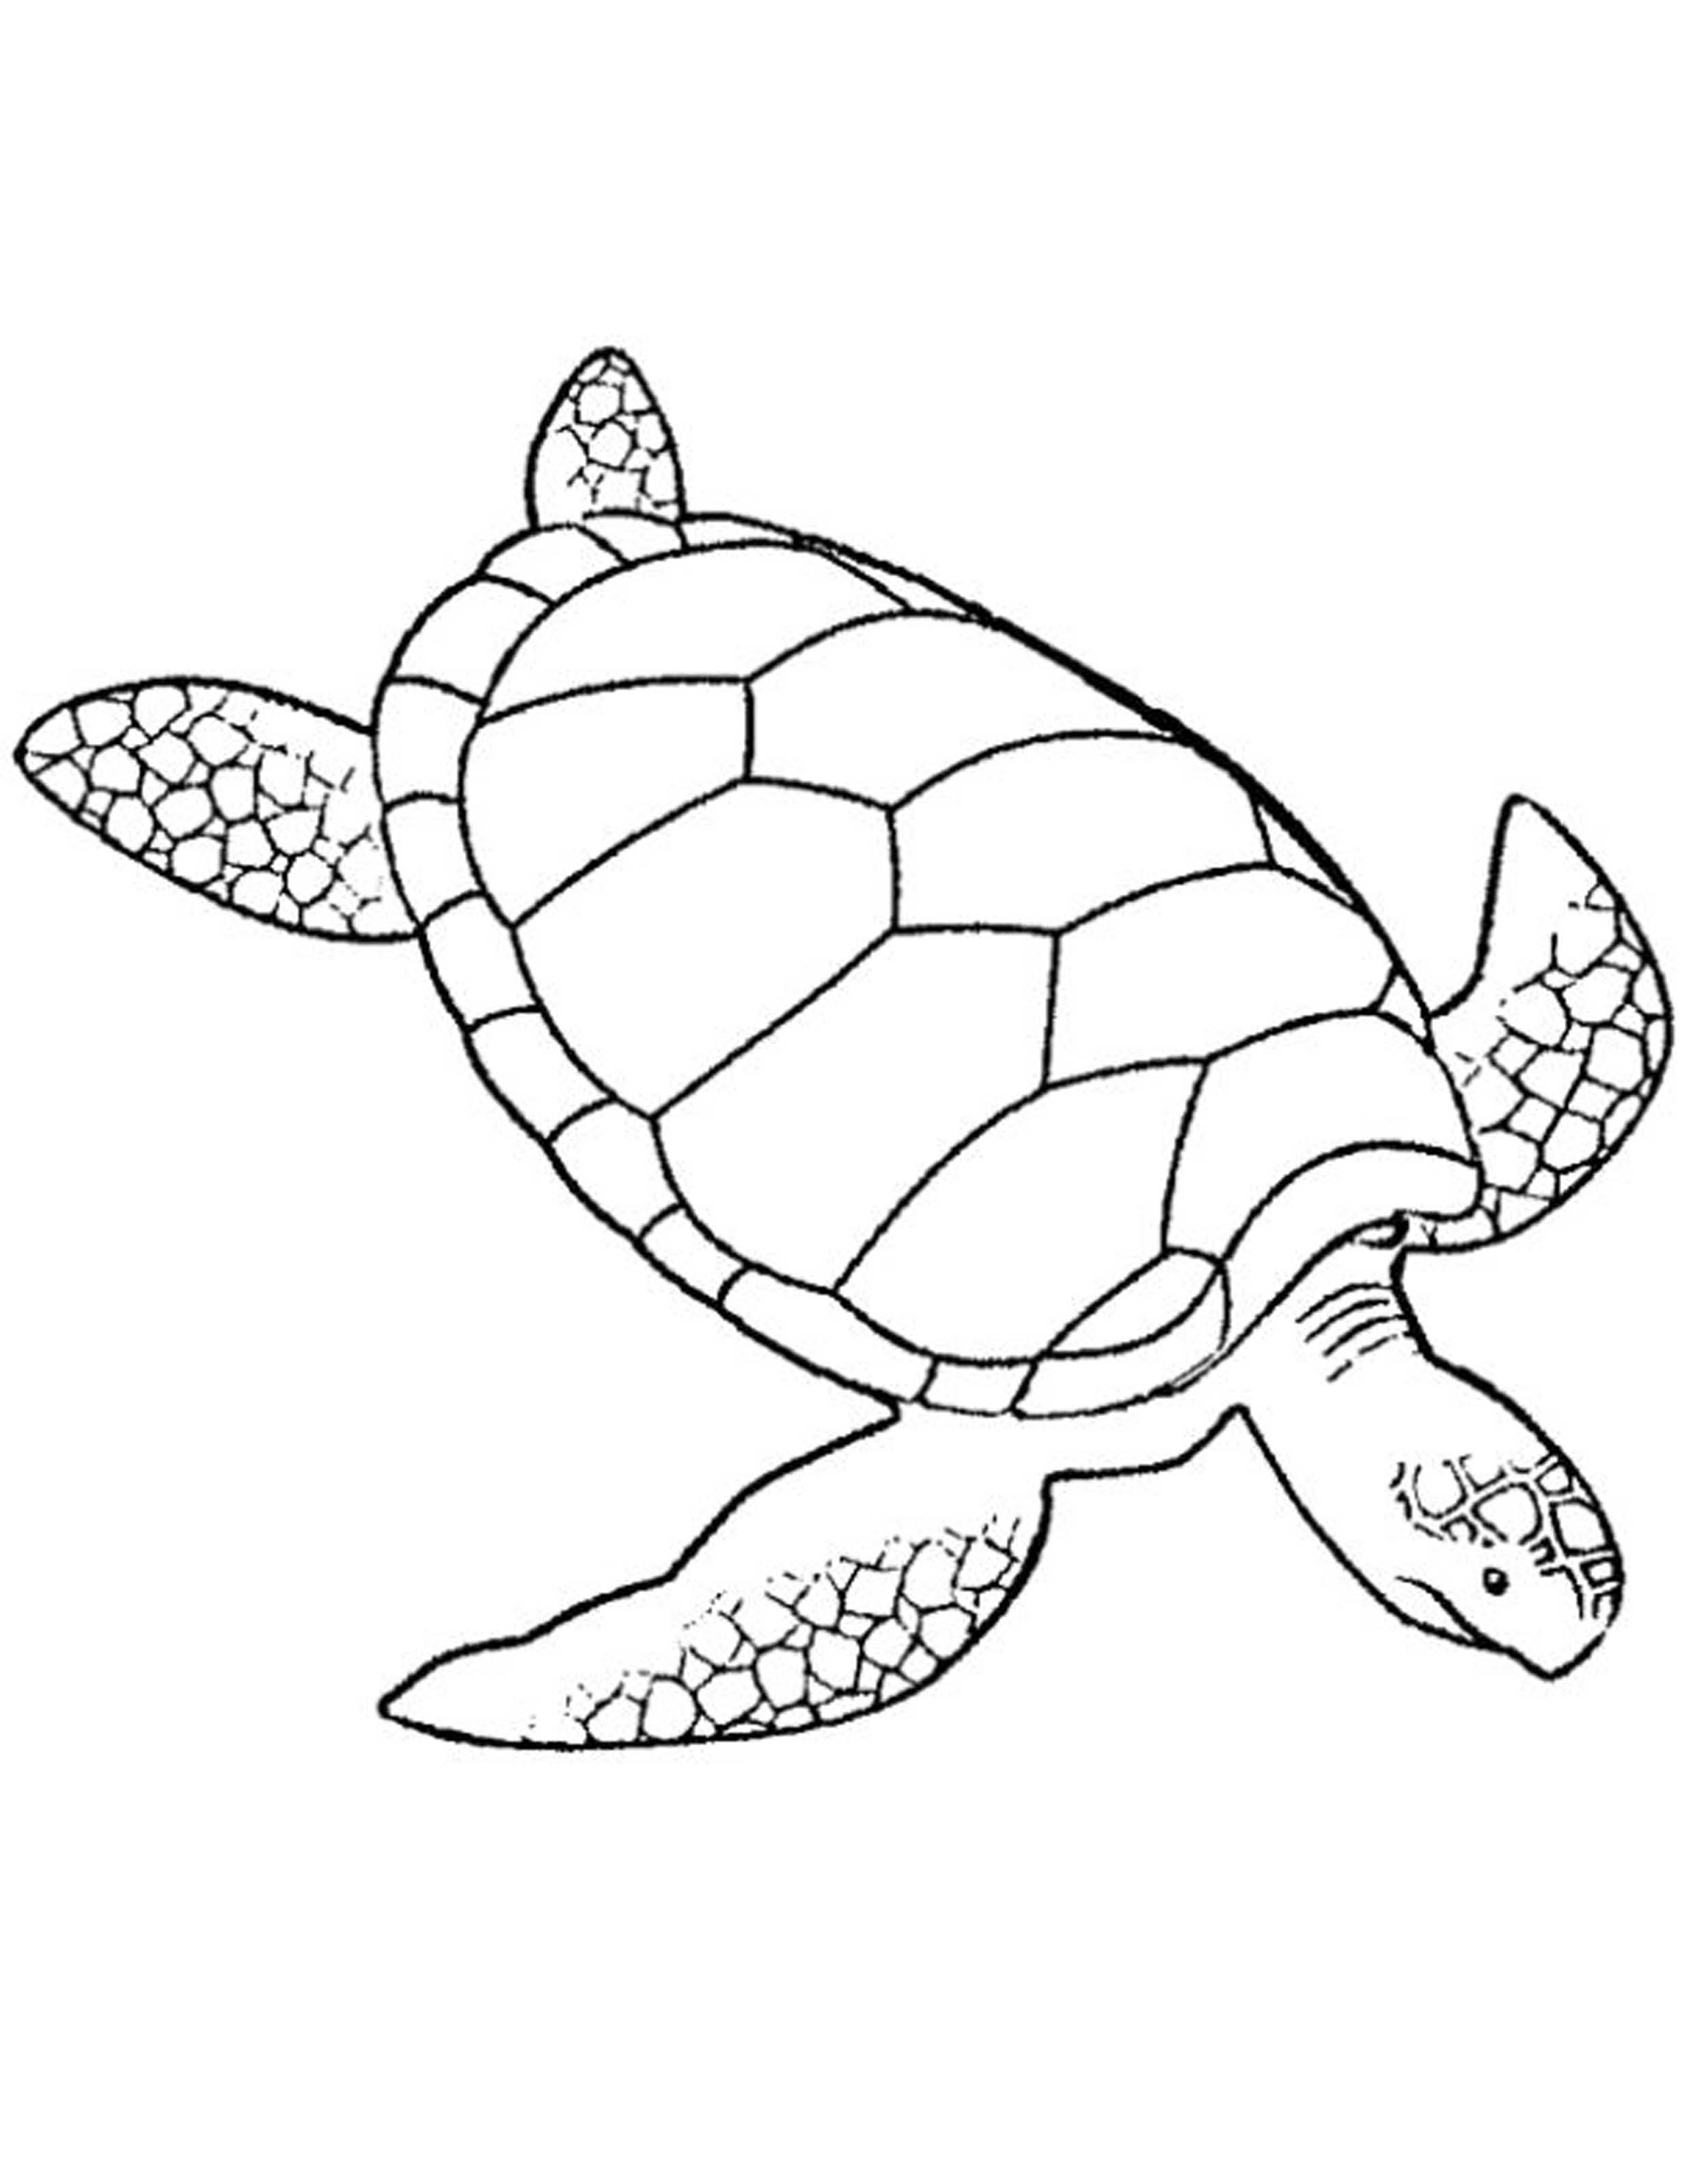 tortoise colouring pictures top 20 free printable turtle coloring pages online colouring tortoise pictures